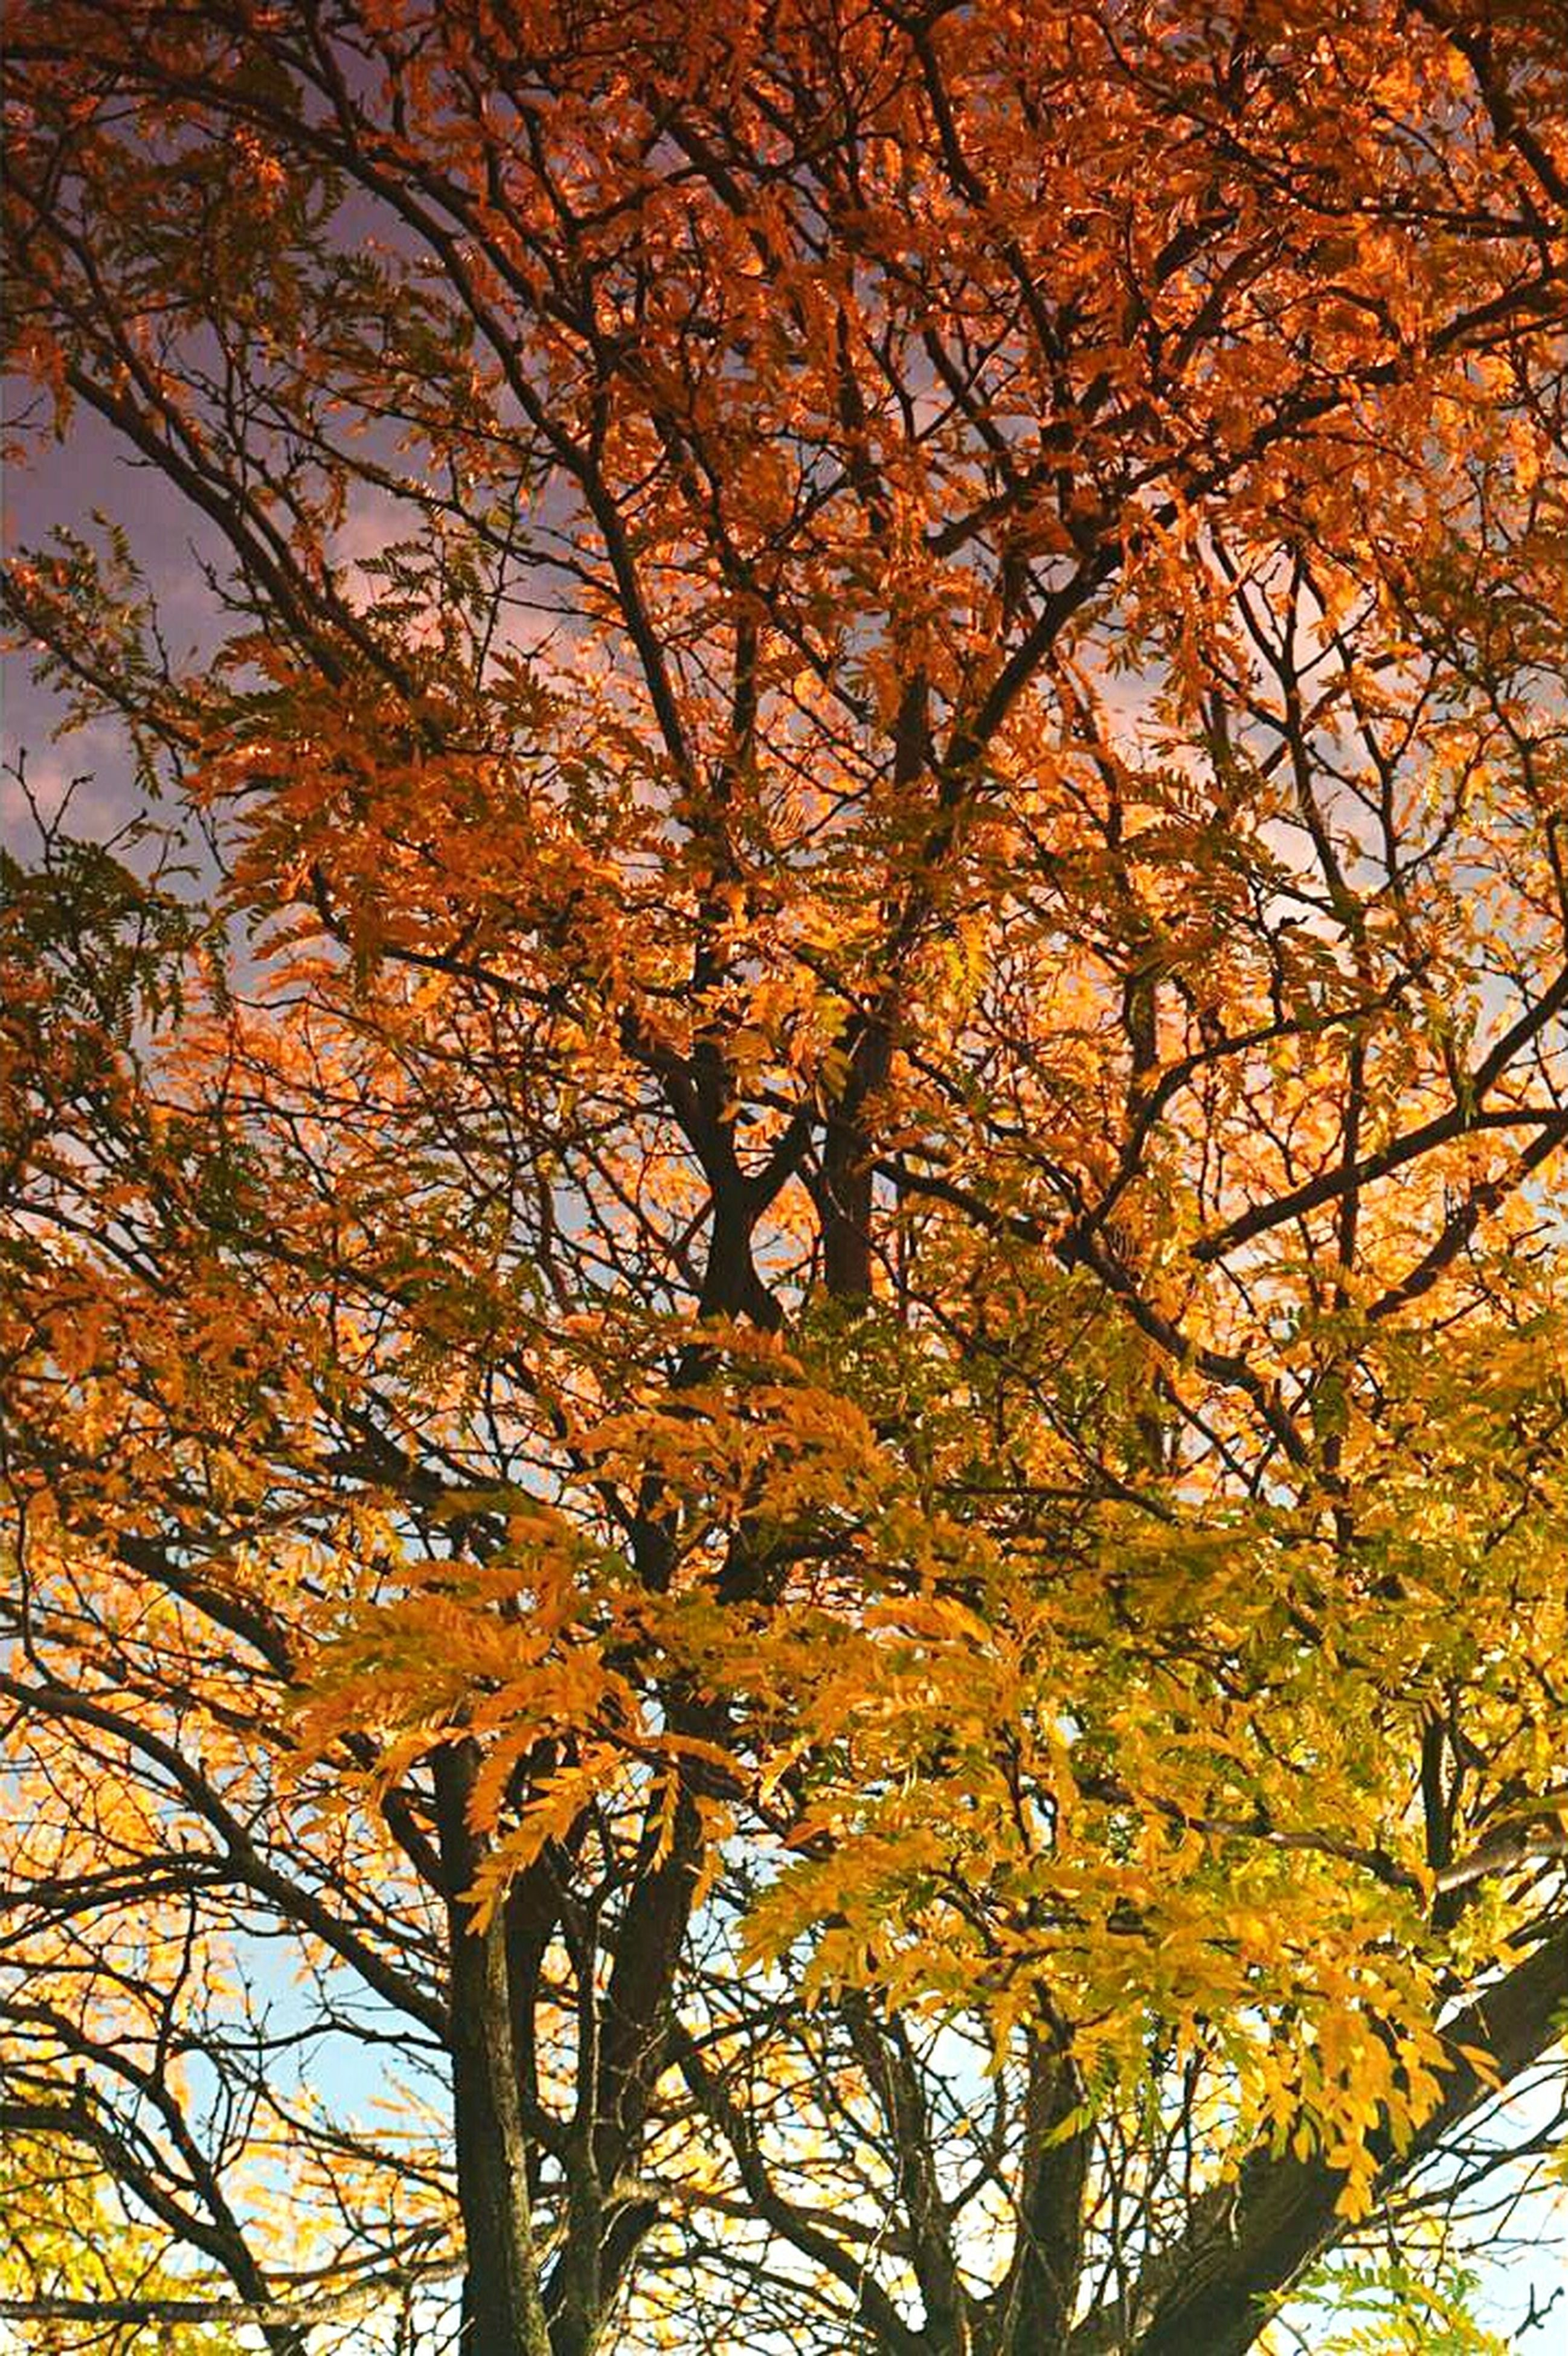 tree, autumn, change, branch, season, tranquility, yellow, beauty in nature, nature, orange color, scenics, growth, tranquil scene, leaf, idyllic, outdoors, water, no people, low angle view, tree trunk